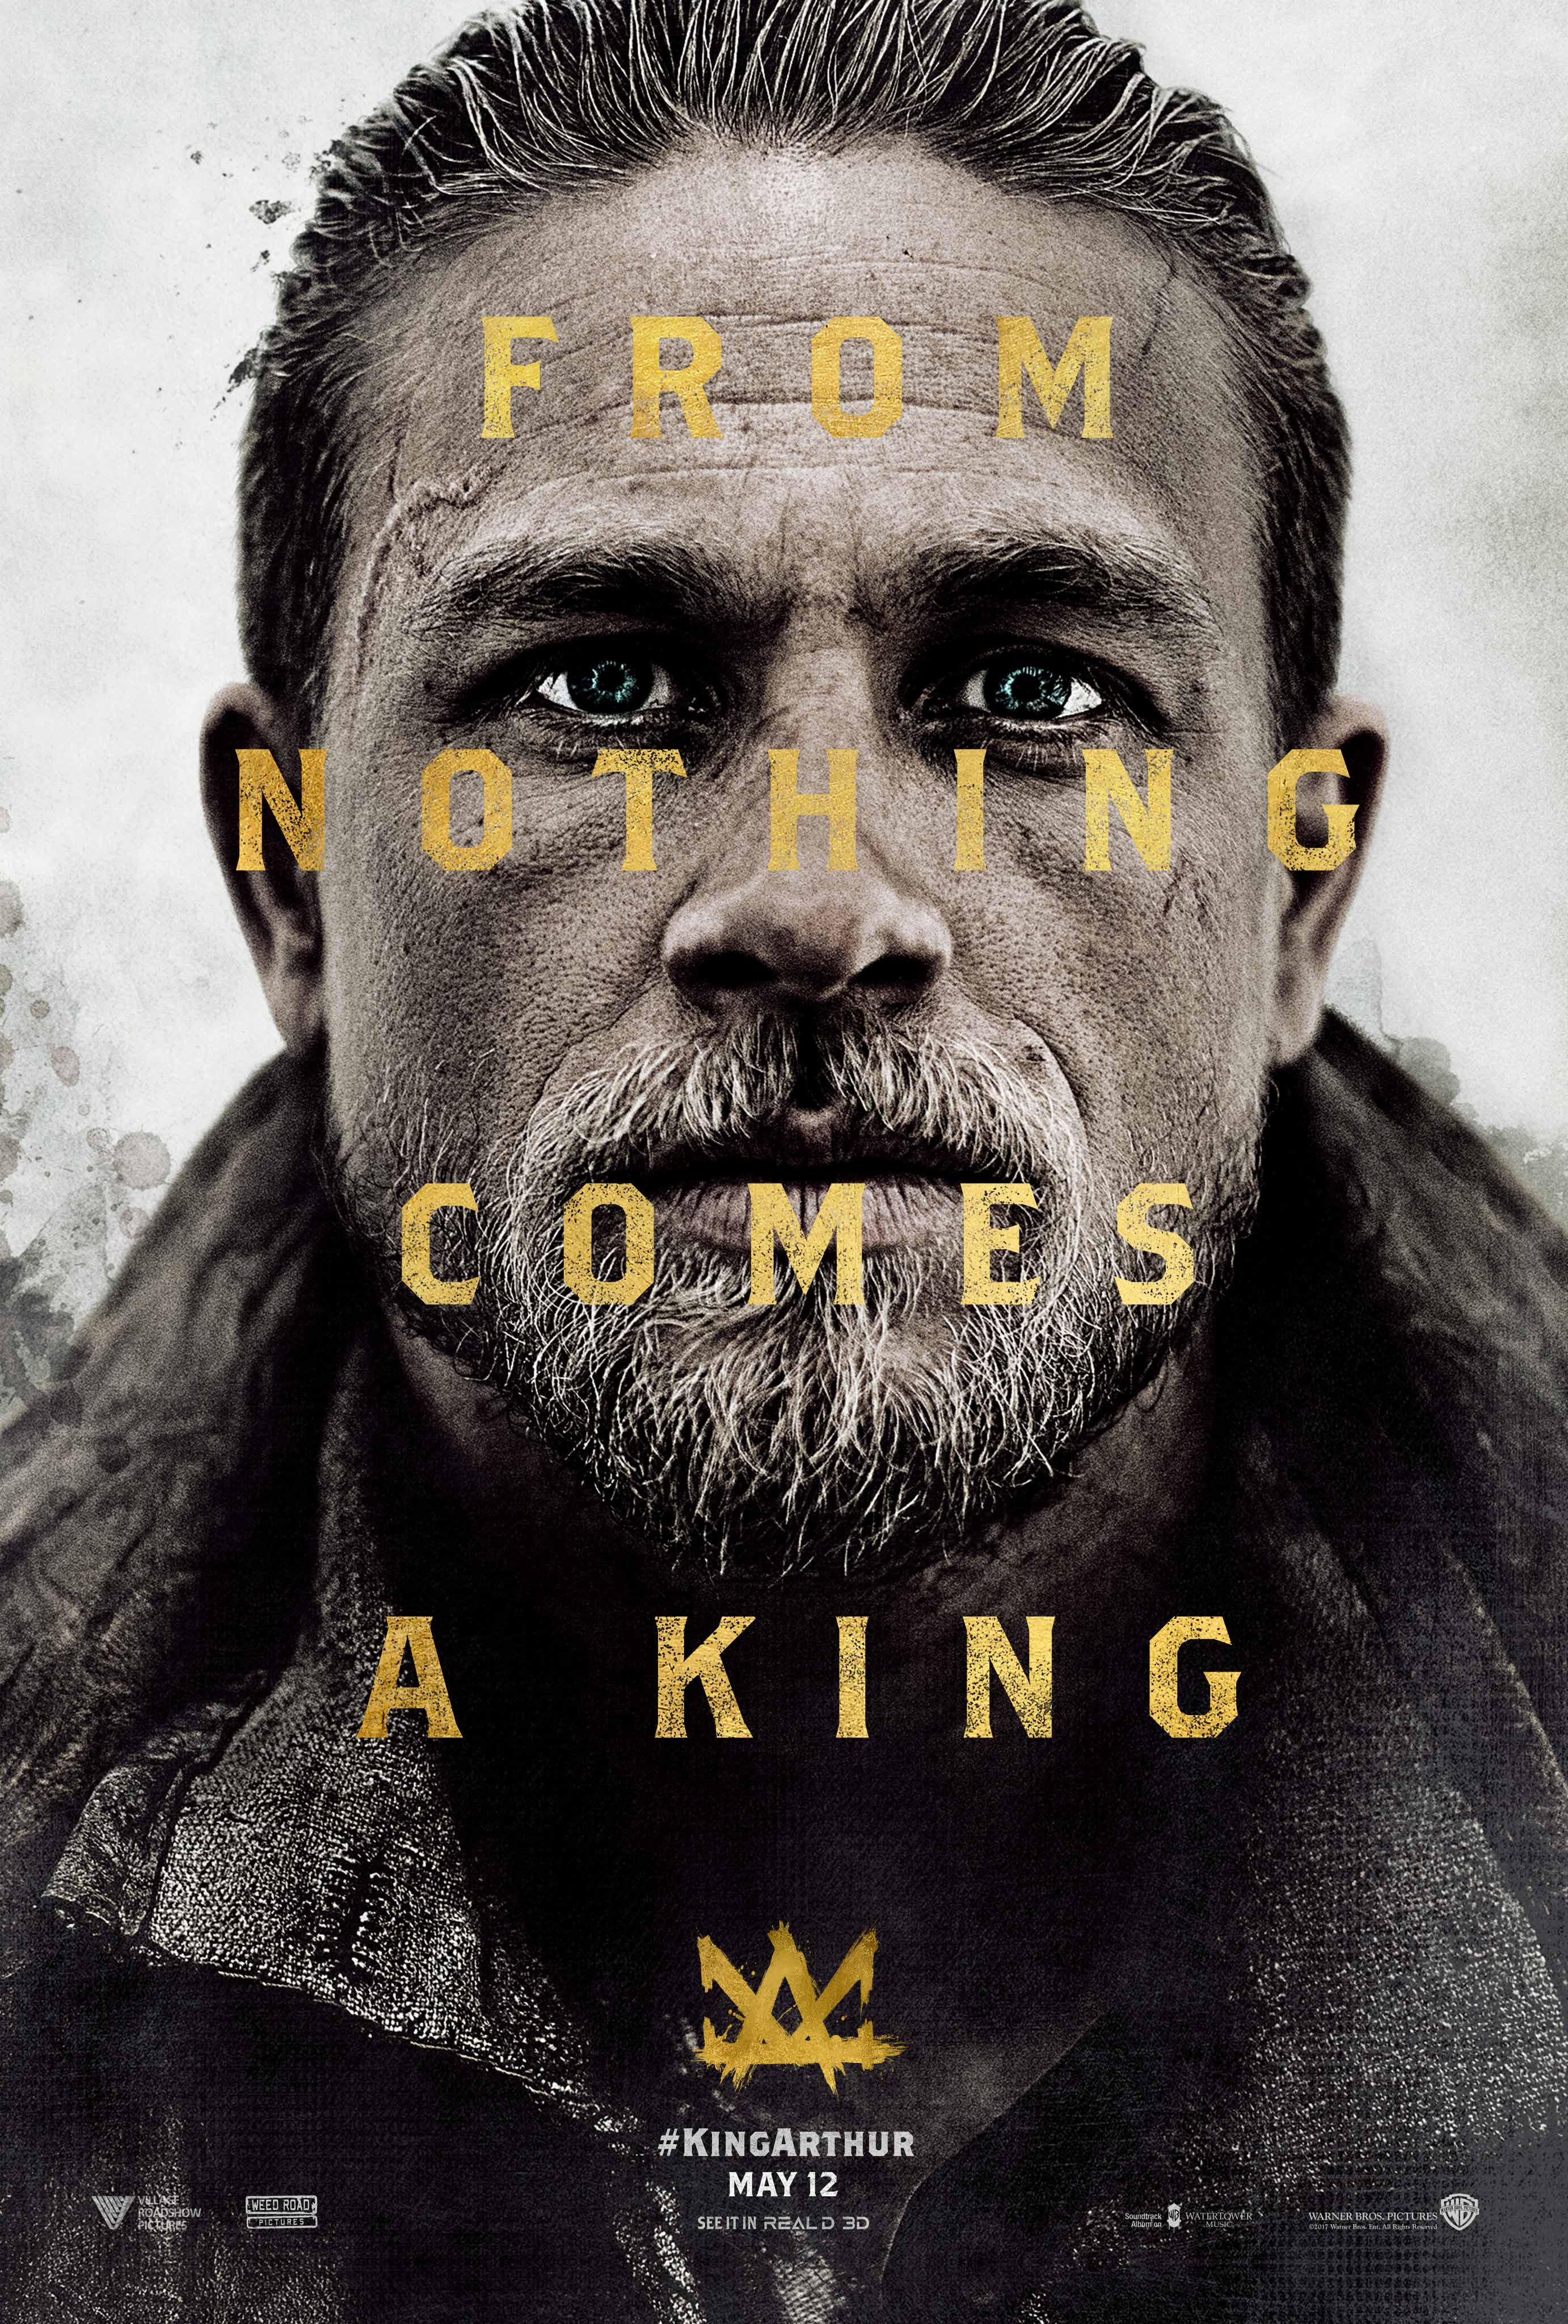 From Nothing Comes A King On This Golden New Poster For KING ARTHUR LEGEND OF THE SWORD